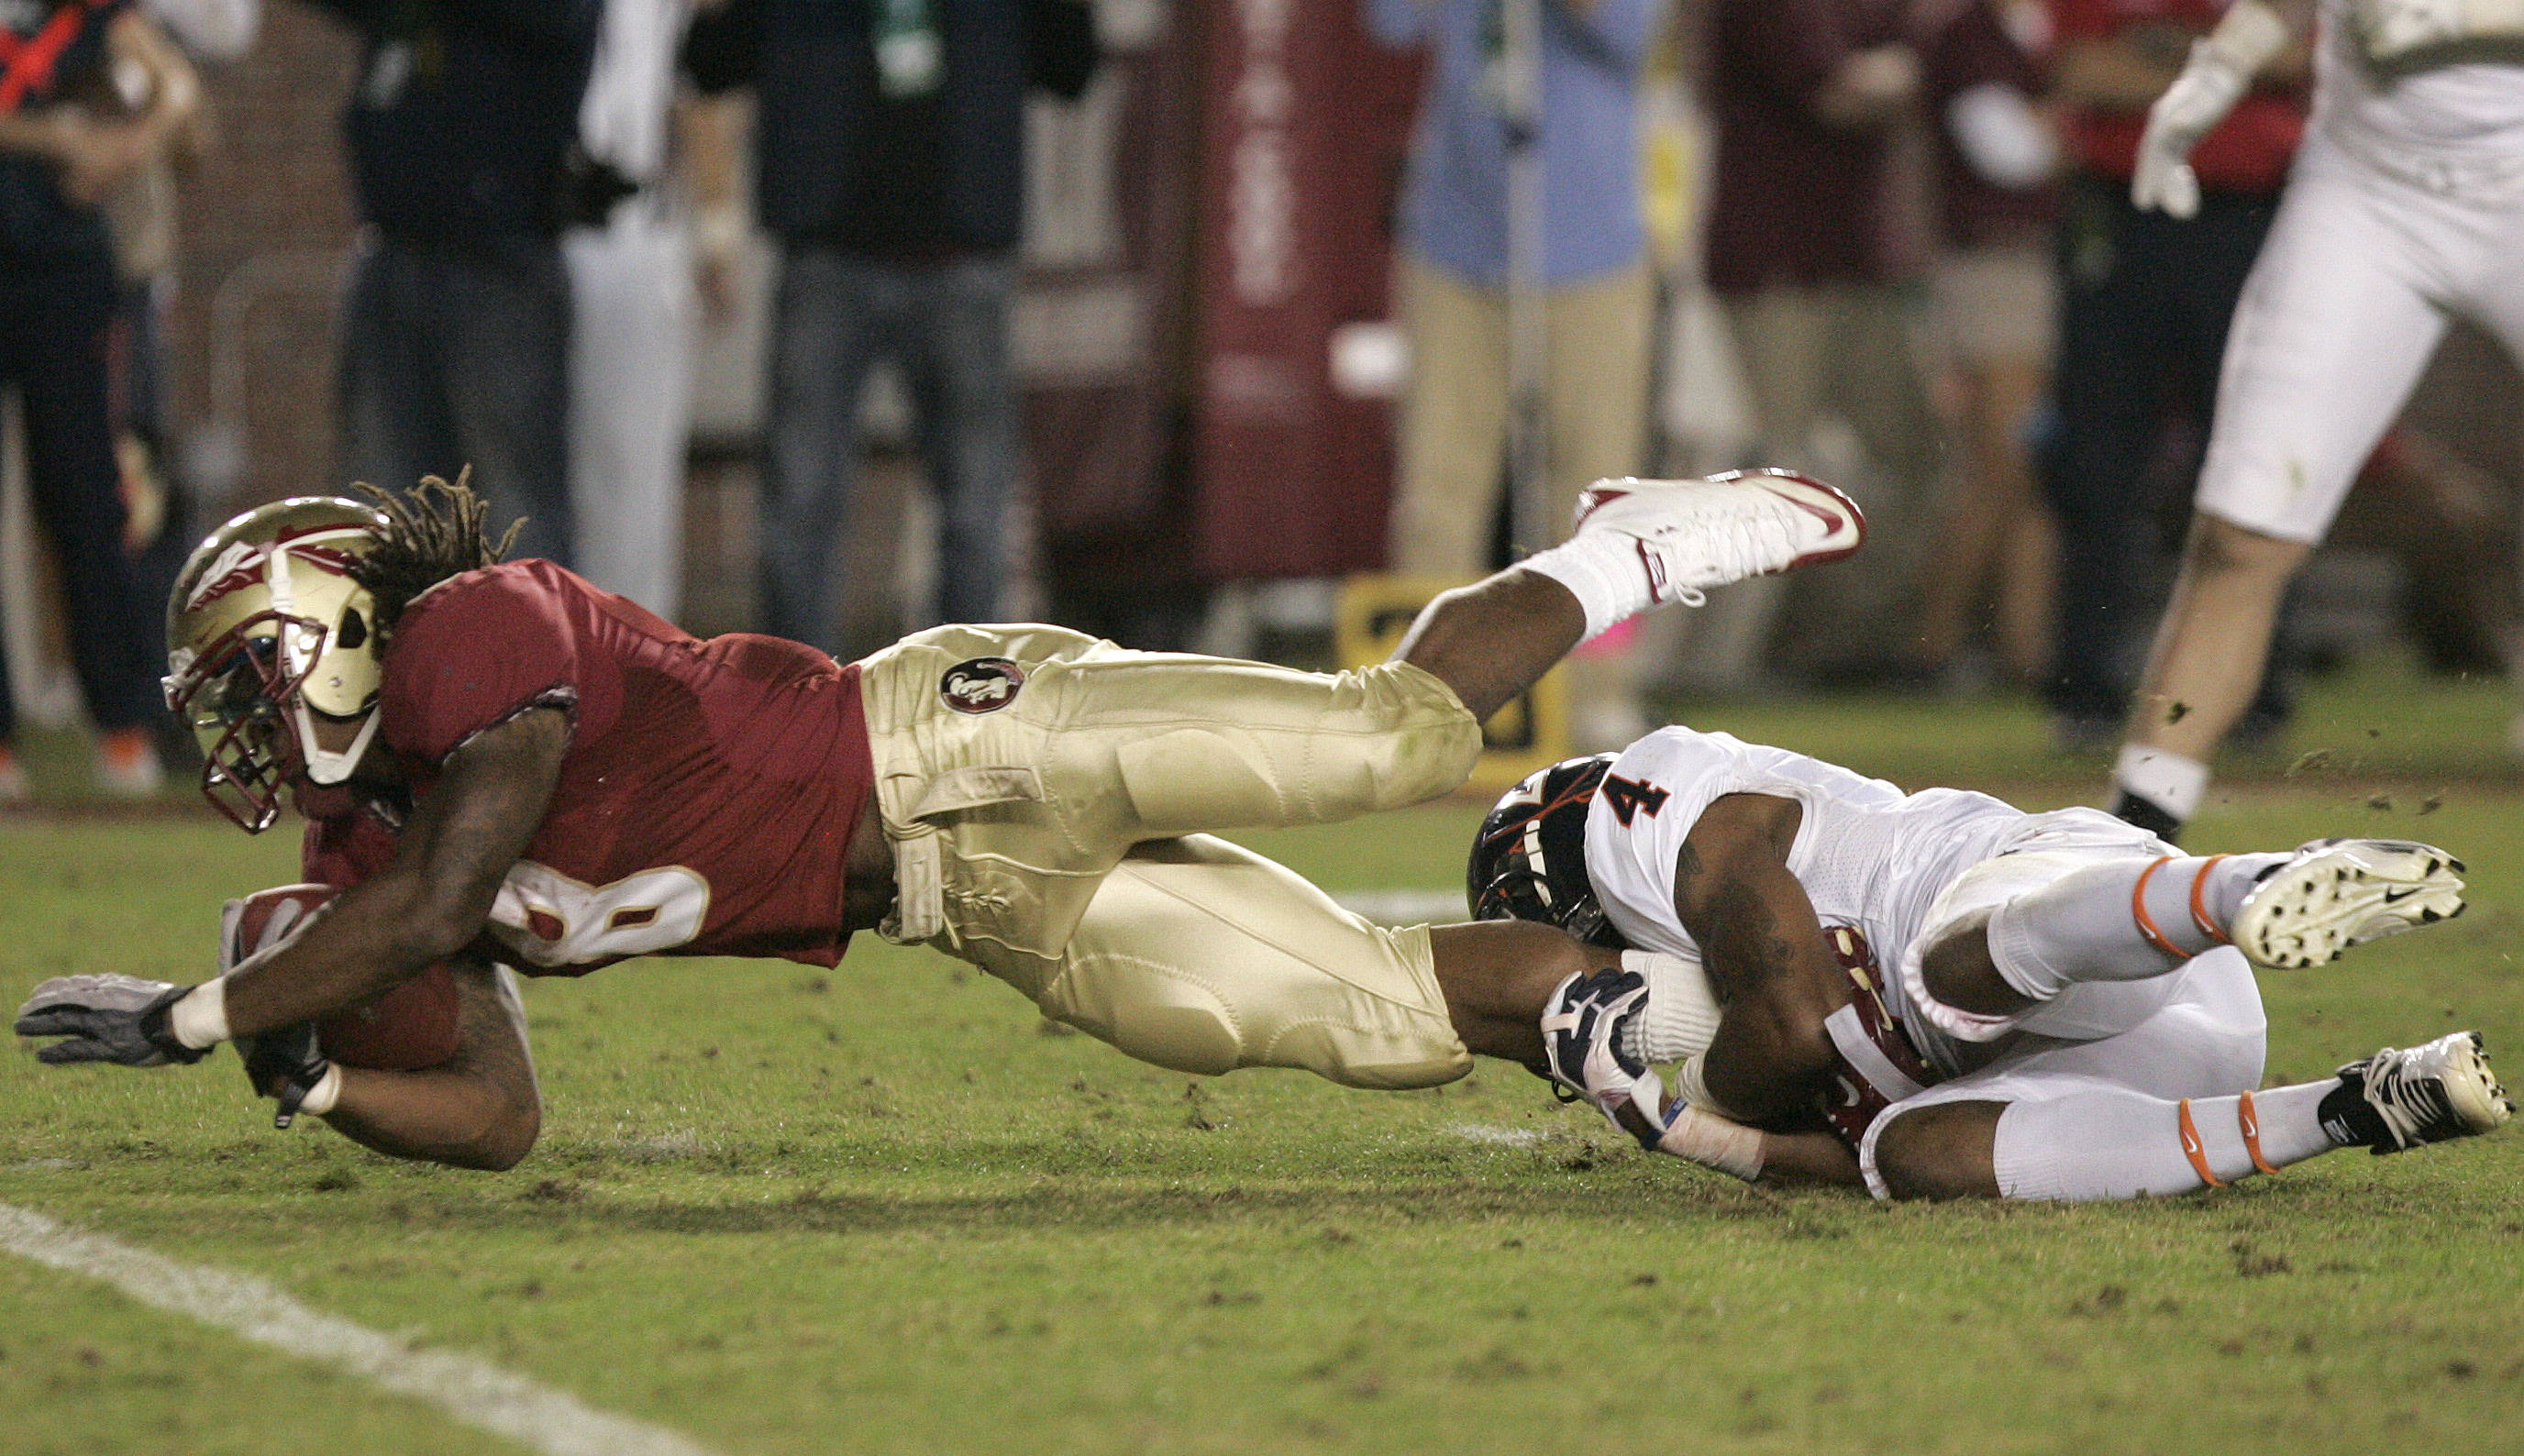 Florida State's Devonta Freeman dives forward as he is tackled by Virginia's Rodney McLeod.(AP Photo/Steve Cannon)